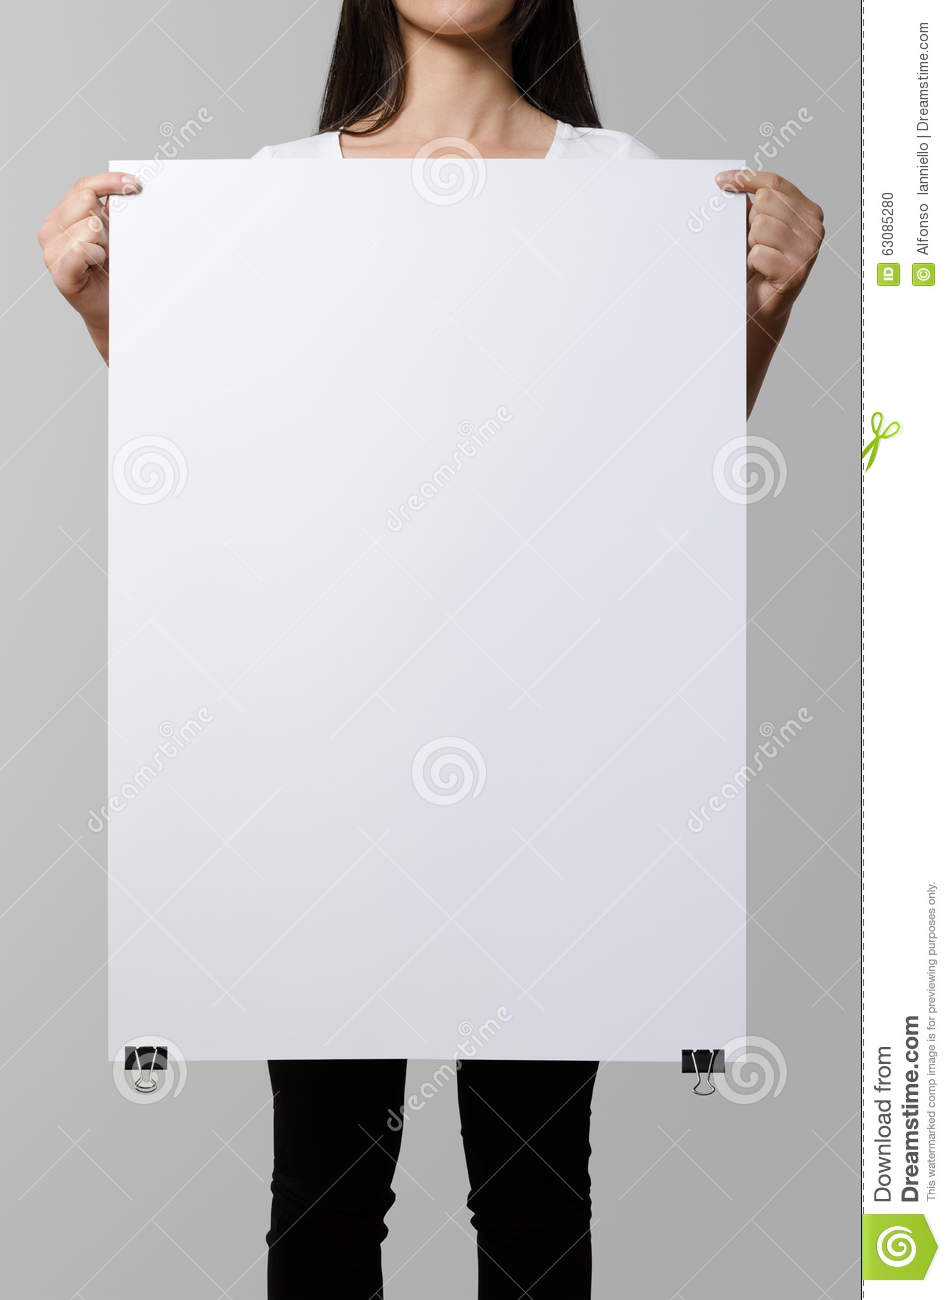 Woman holding a blank poster.